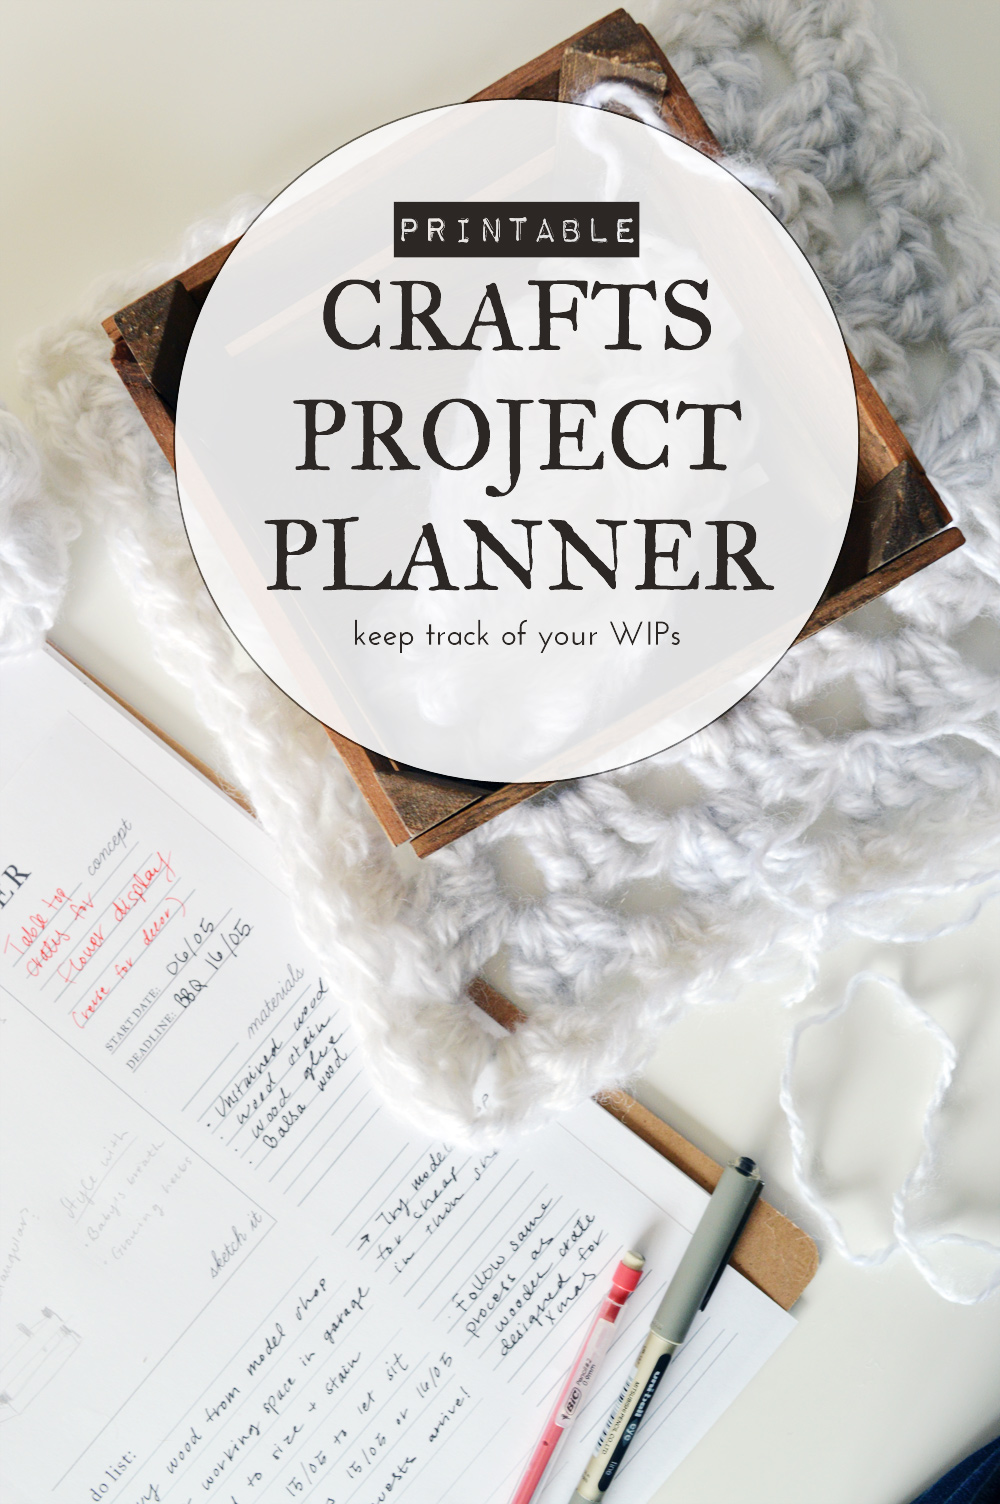 Printable craft project planner |  #crafts #DIY #printable #freebie